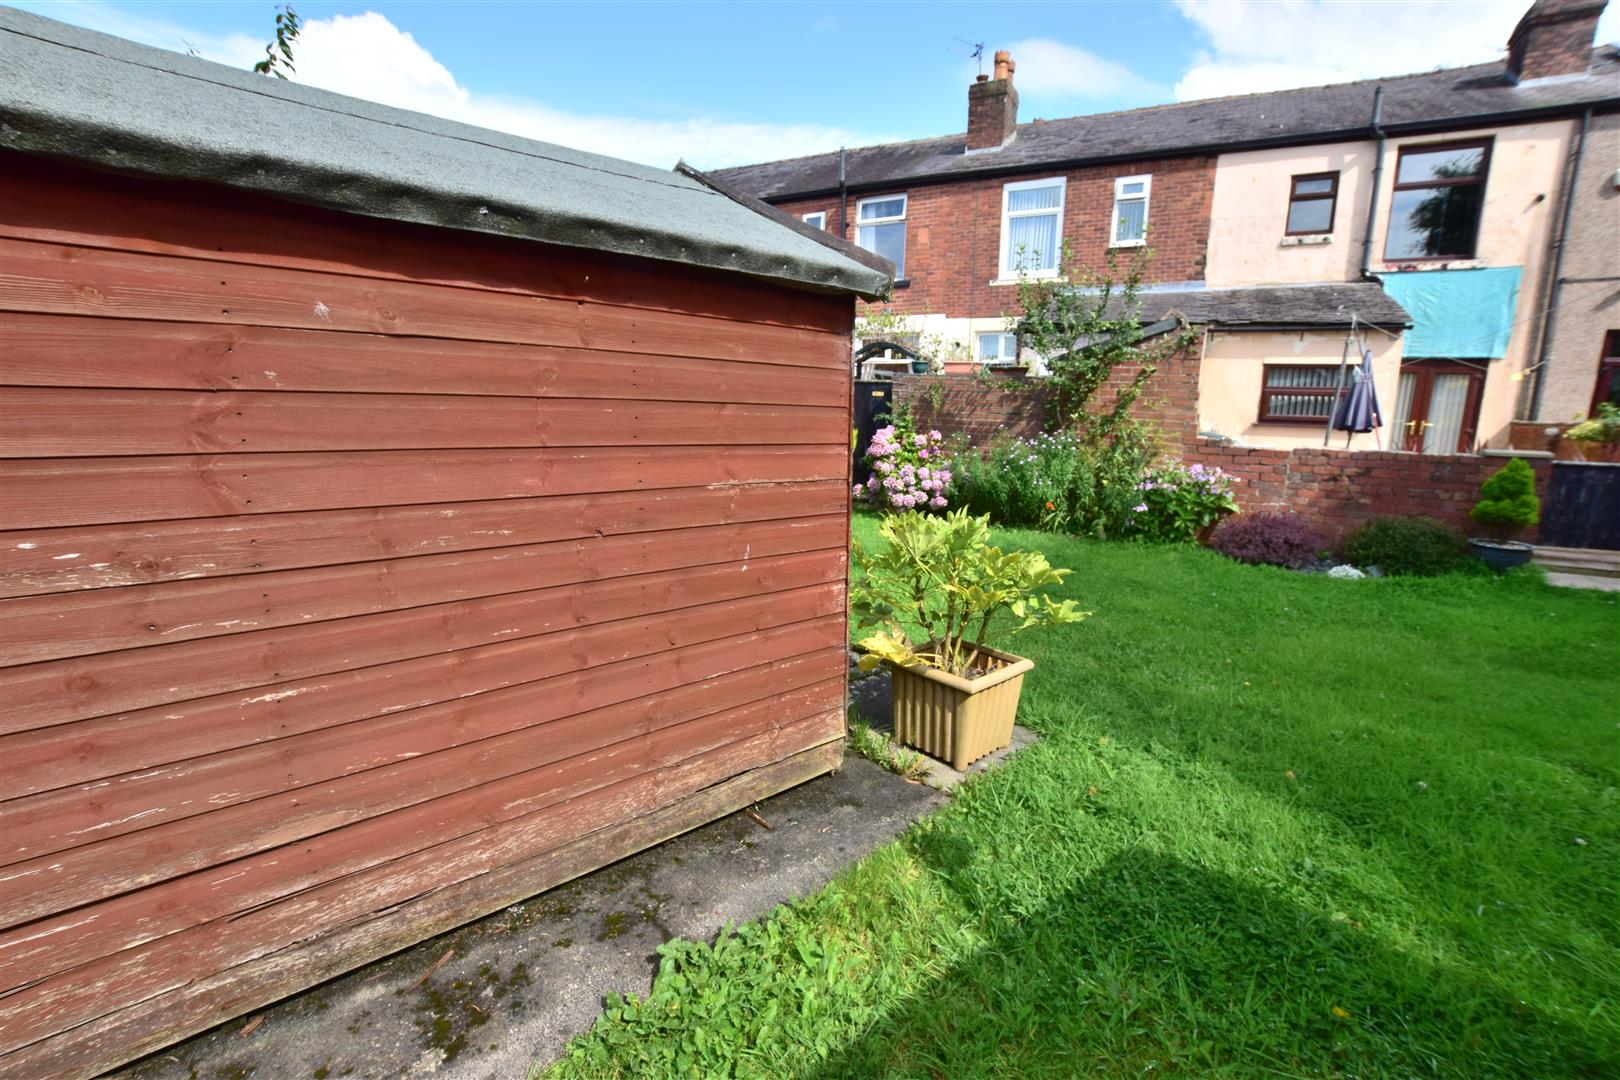 3 Bedrooms House for sale in Nellie Street, Heywood